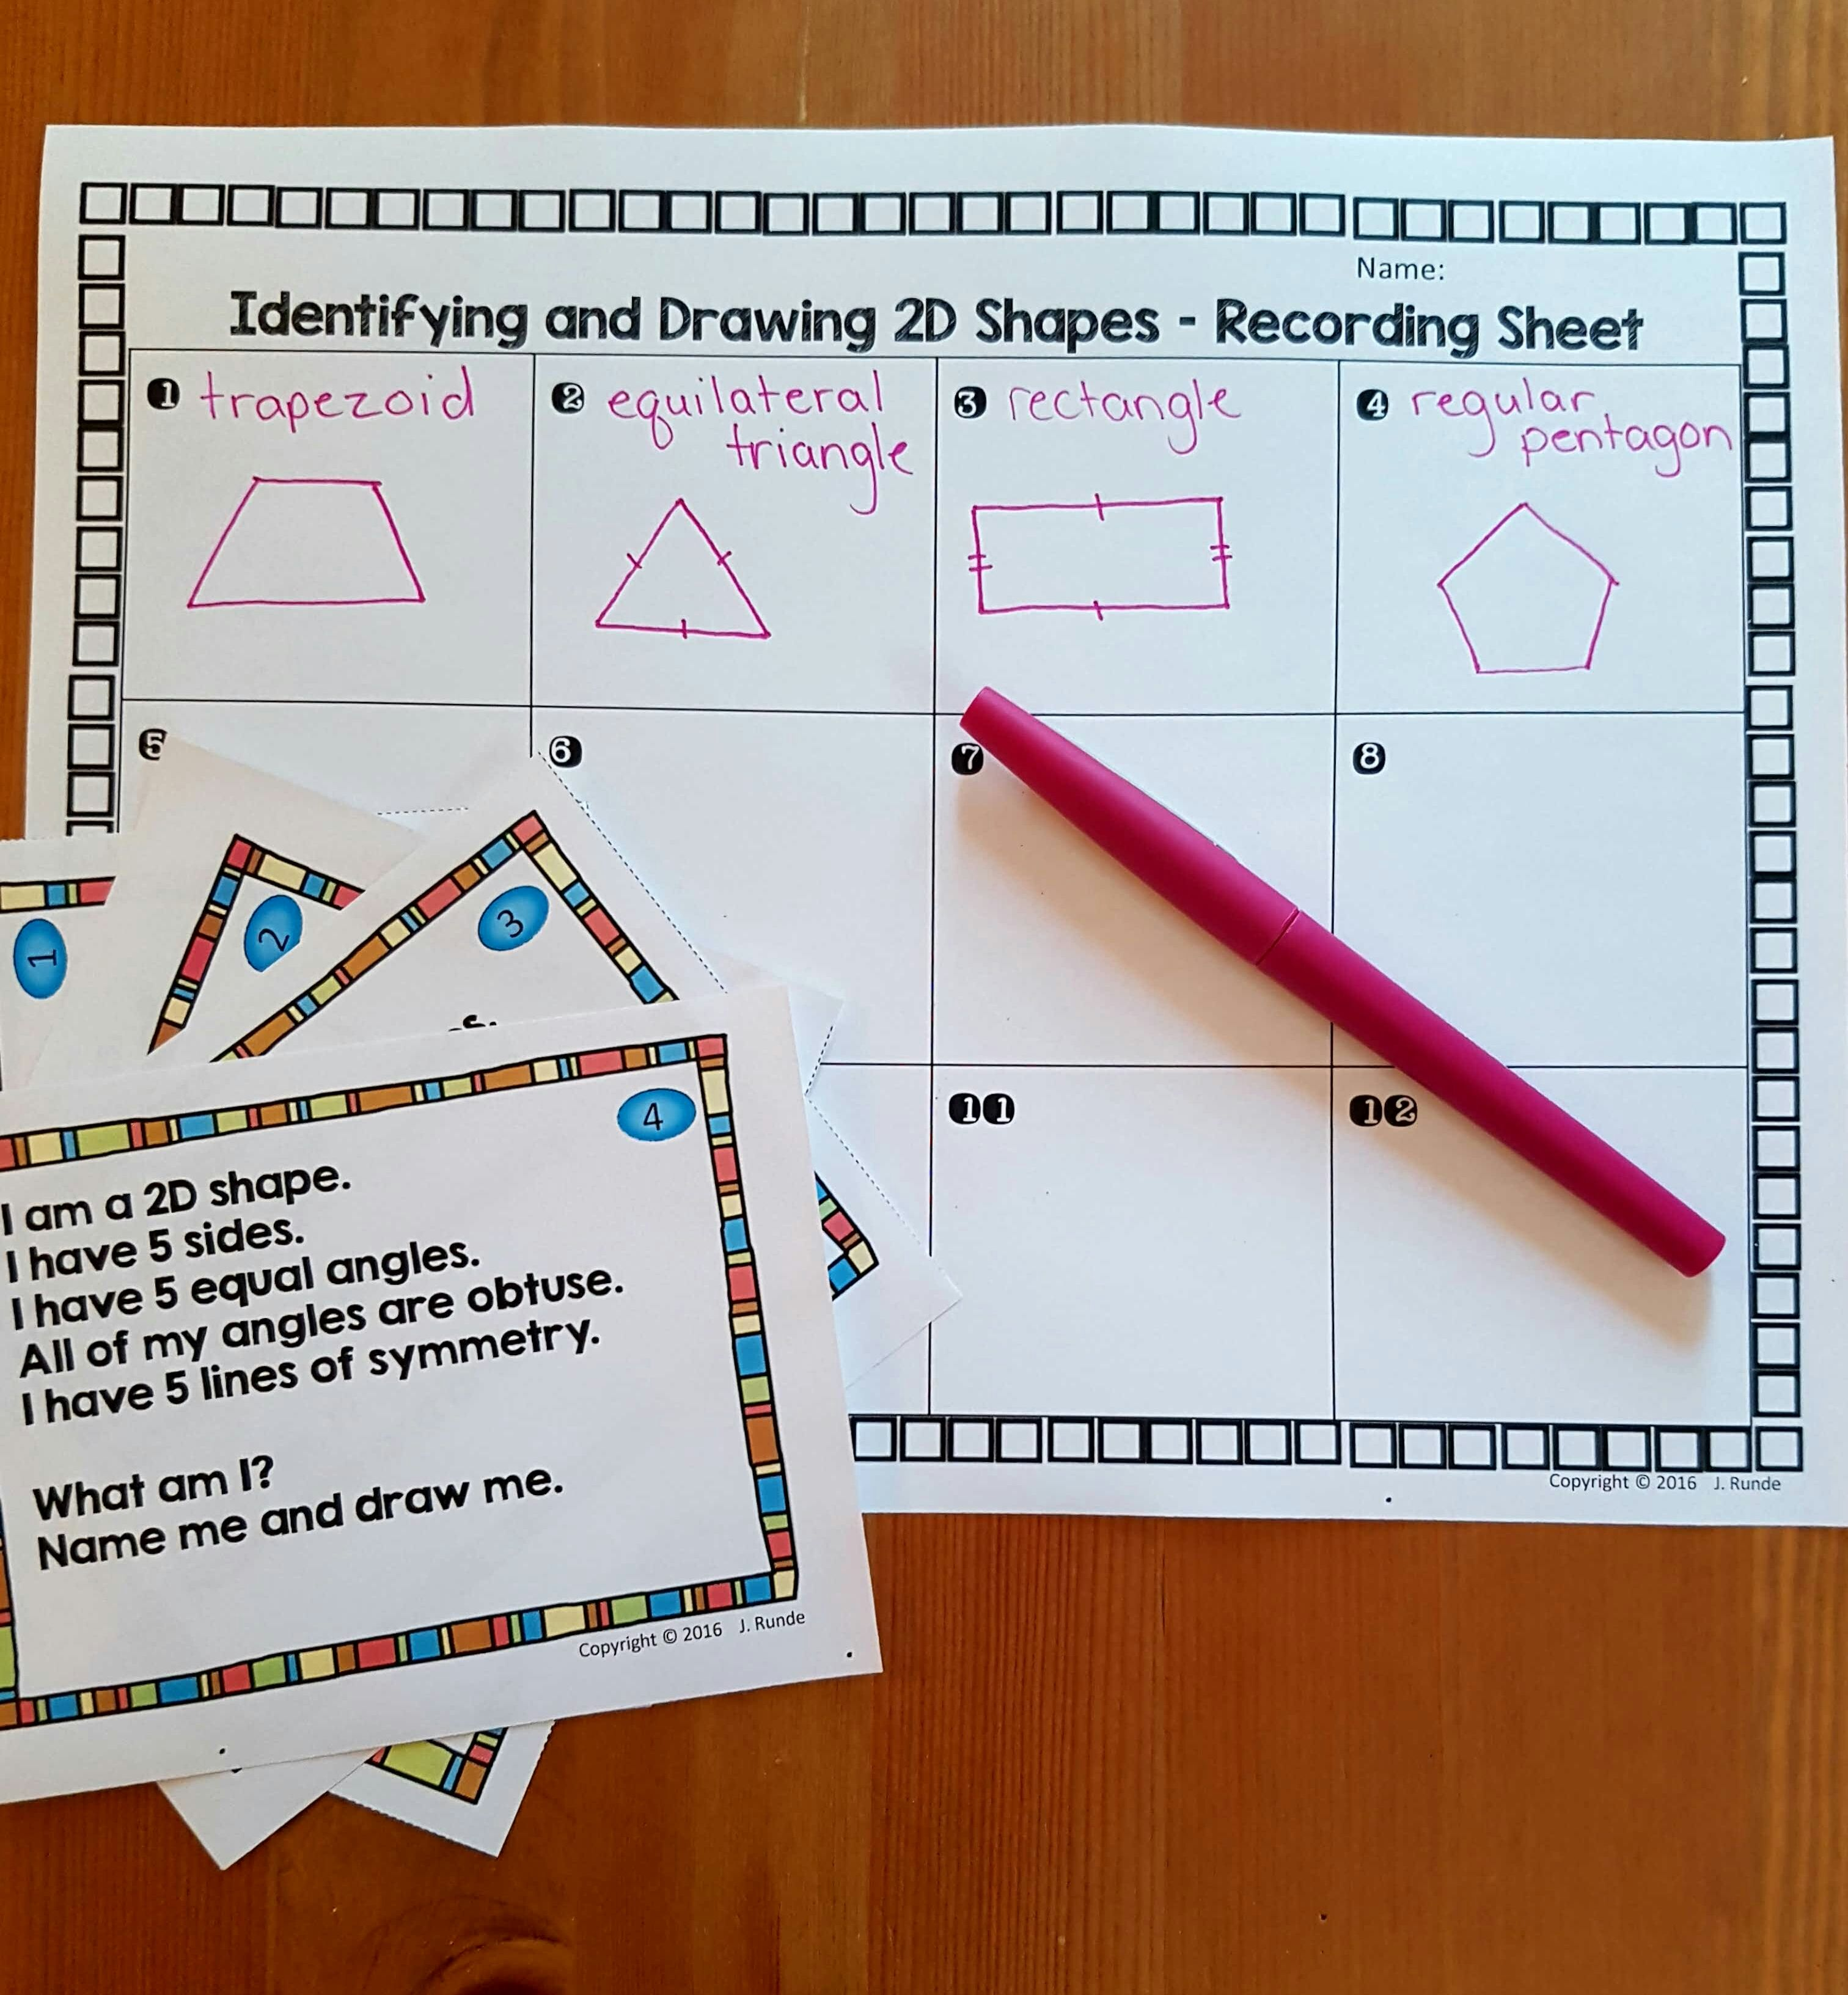 2d Shape Task Cards Students Identify And Draw Shape From The Clues Given About The Properties Perfect Math Statio Task Cards Teaching Math Elementary Math [ 3265 x 3024 Pixel ]